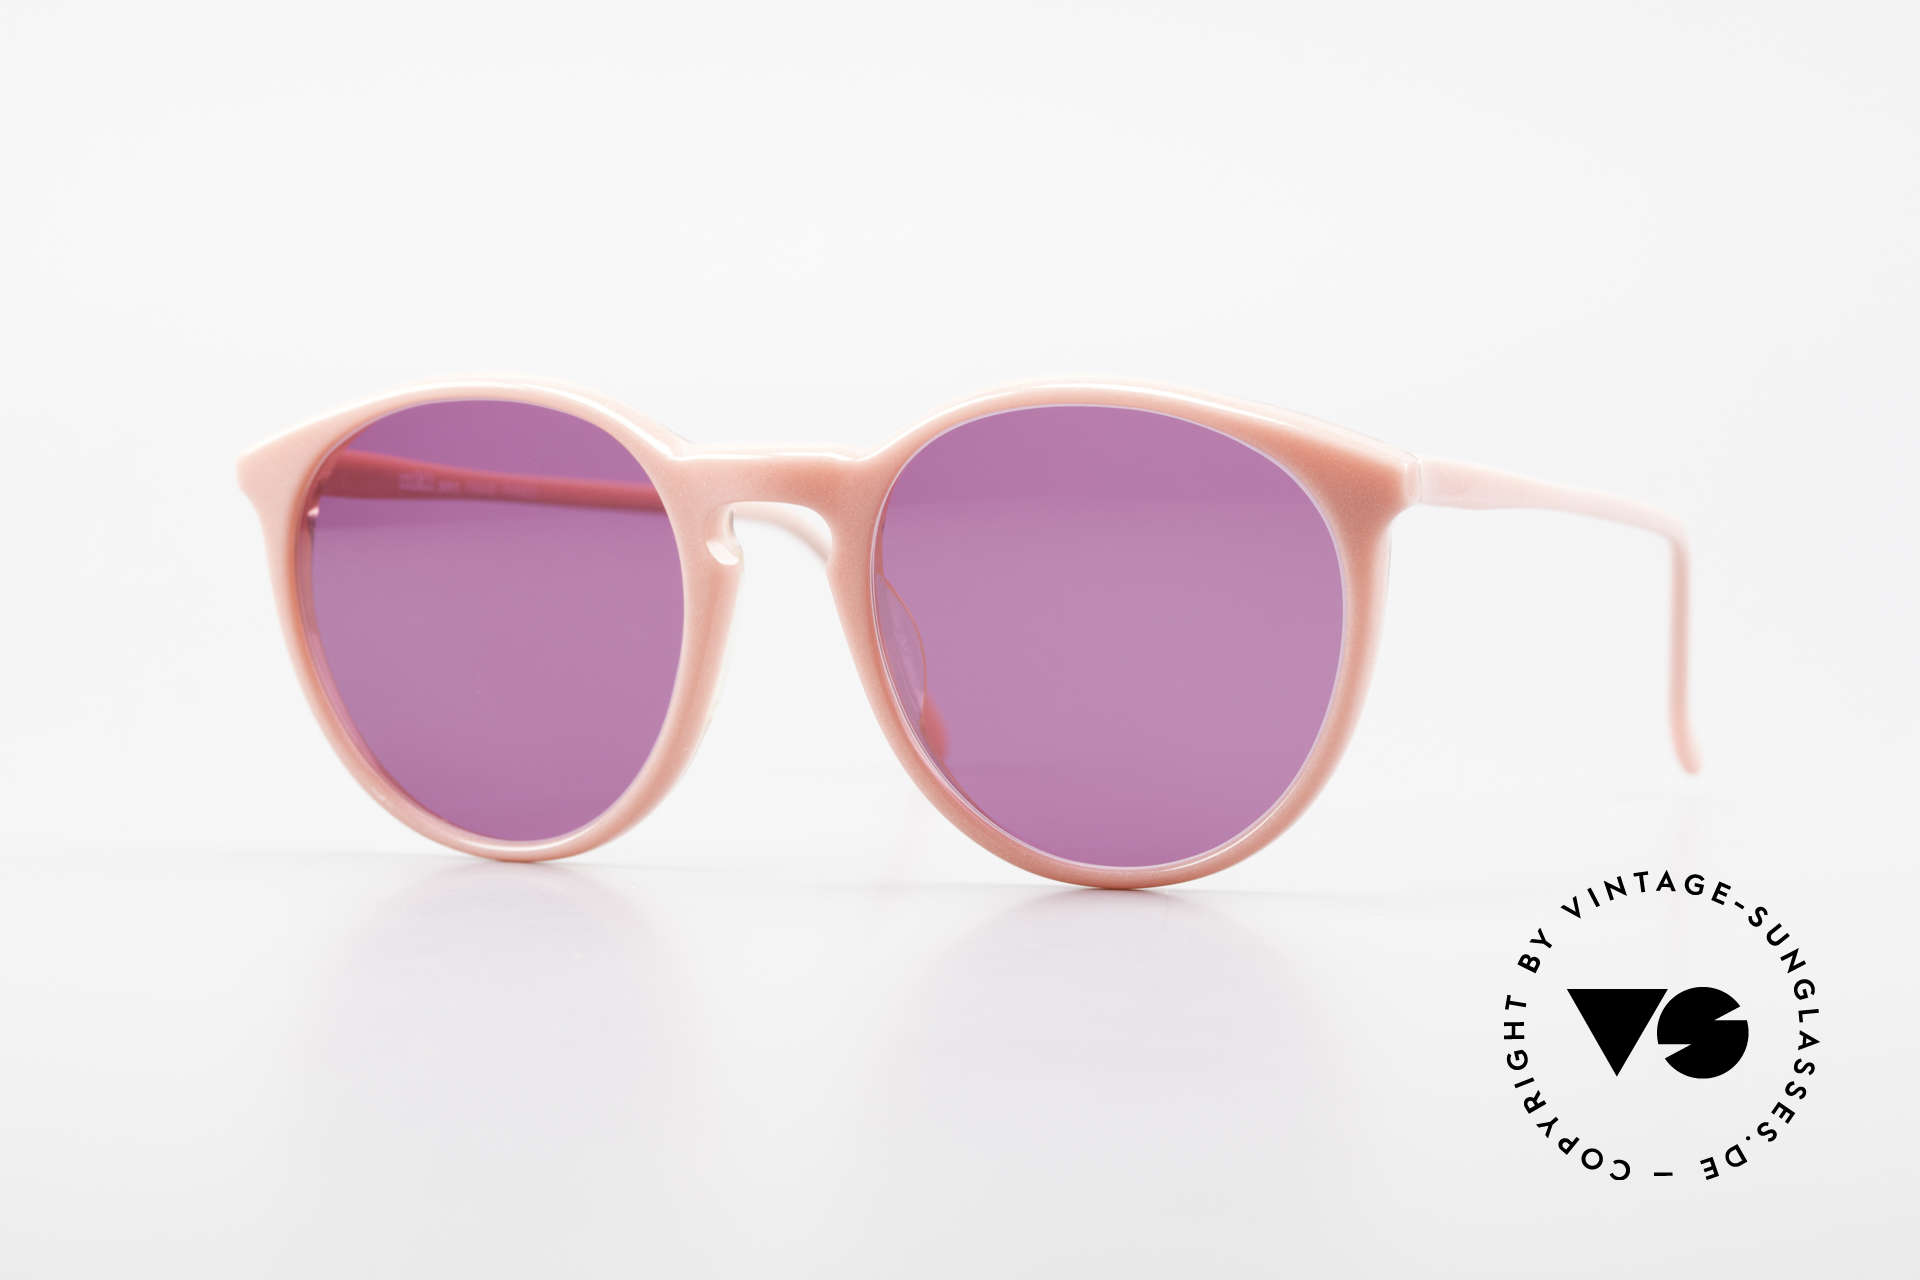 Alain Mikli 901 / 081 Panto Sunglasses Purple Pink, elegant VINTAGE Alain Mikli designer sunglasses, Made for Women